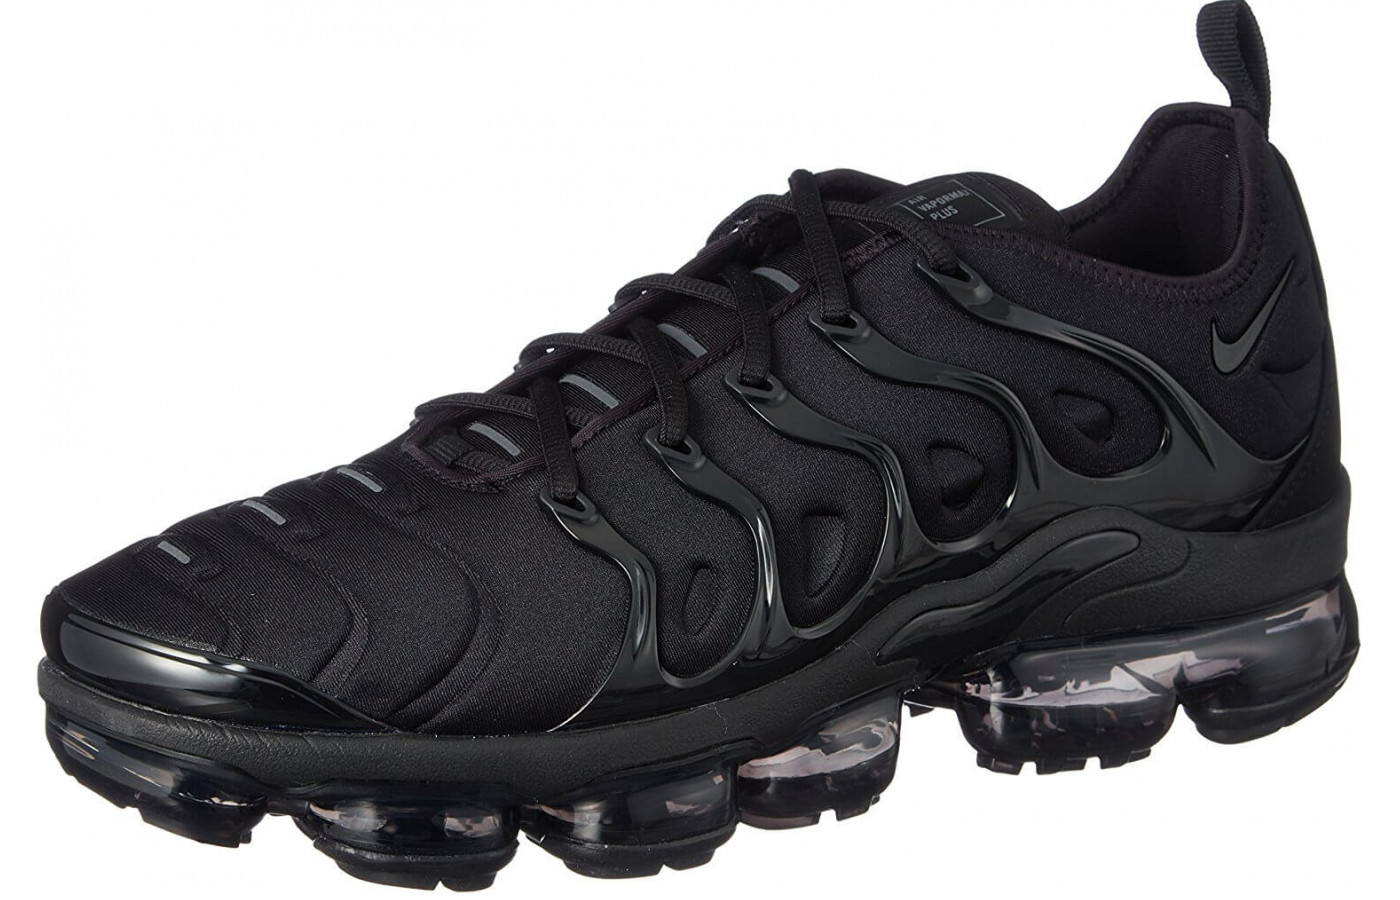 2c2cc14f83c7 Nike Air VaporMax Plus Review - Buy or Not in Apr 2019